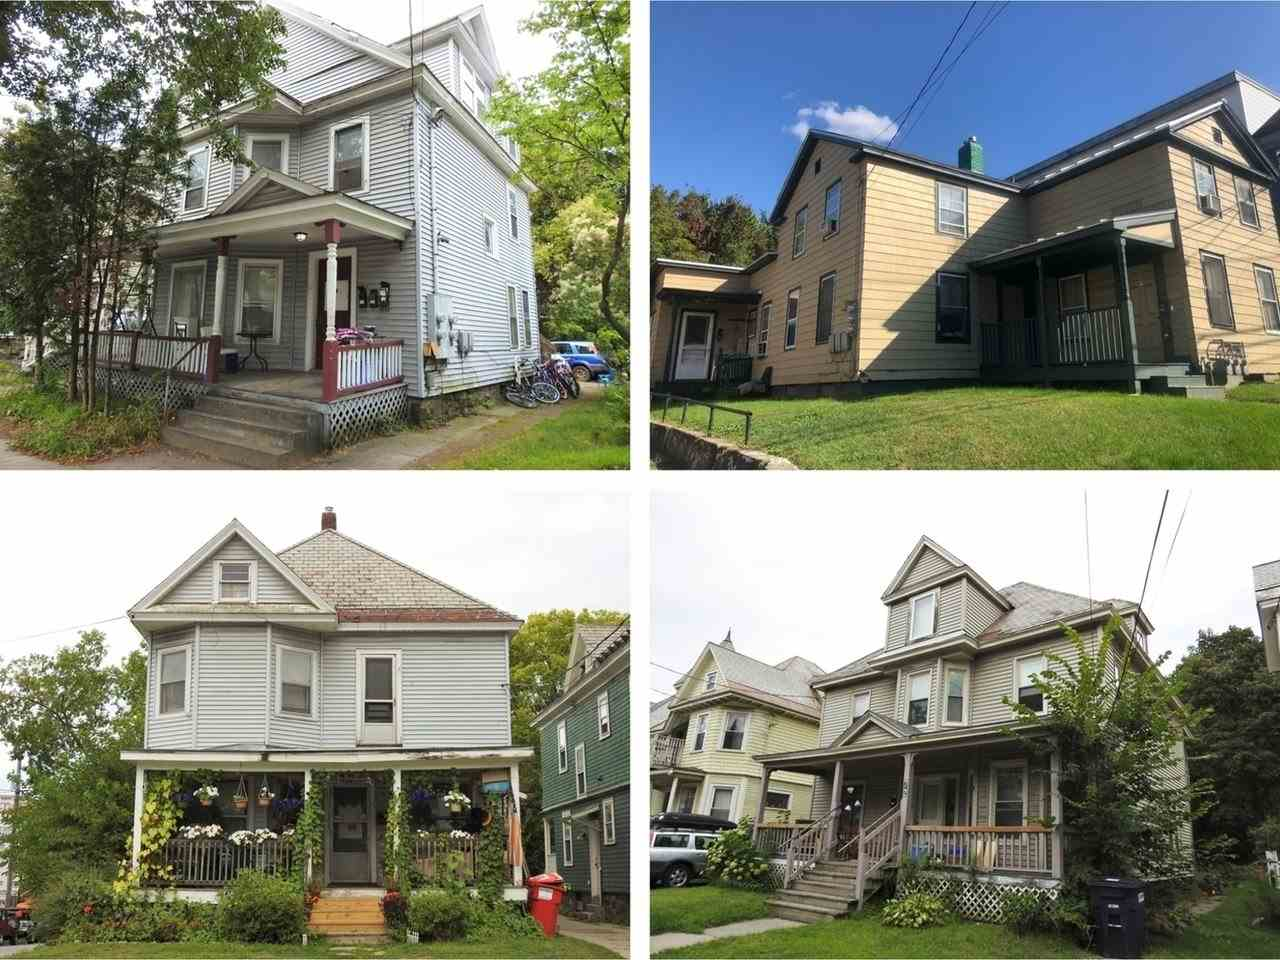 Special opportunity to establish yourself in the Burlington rental market with this four-property investment portfolio. Each of these rentals is in a great location attractive to all types of tenants including students with proximity to Church Street, colleges, the University of Vermont Medical Center, and the bustling Winooski Circle. Consisting of three Triplexes and a Single-Family residence, the portfolio offers a mix of units from studios to a 4-Bedroom house with significant upside all around. Seize the chance to take this portfolio to the next level!